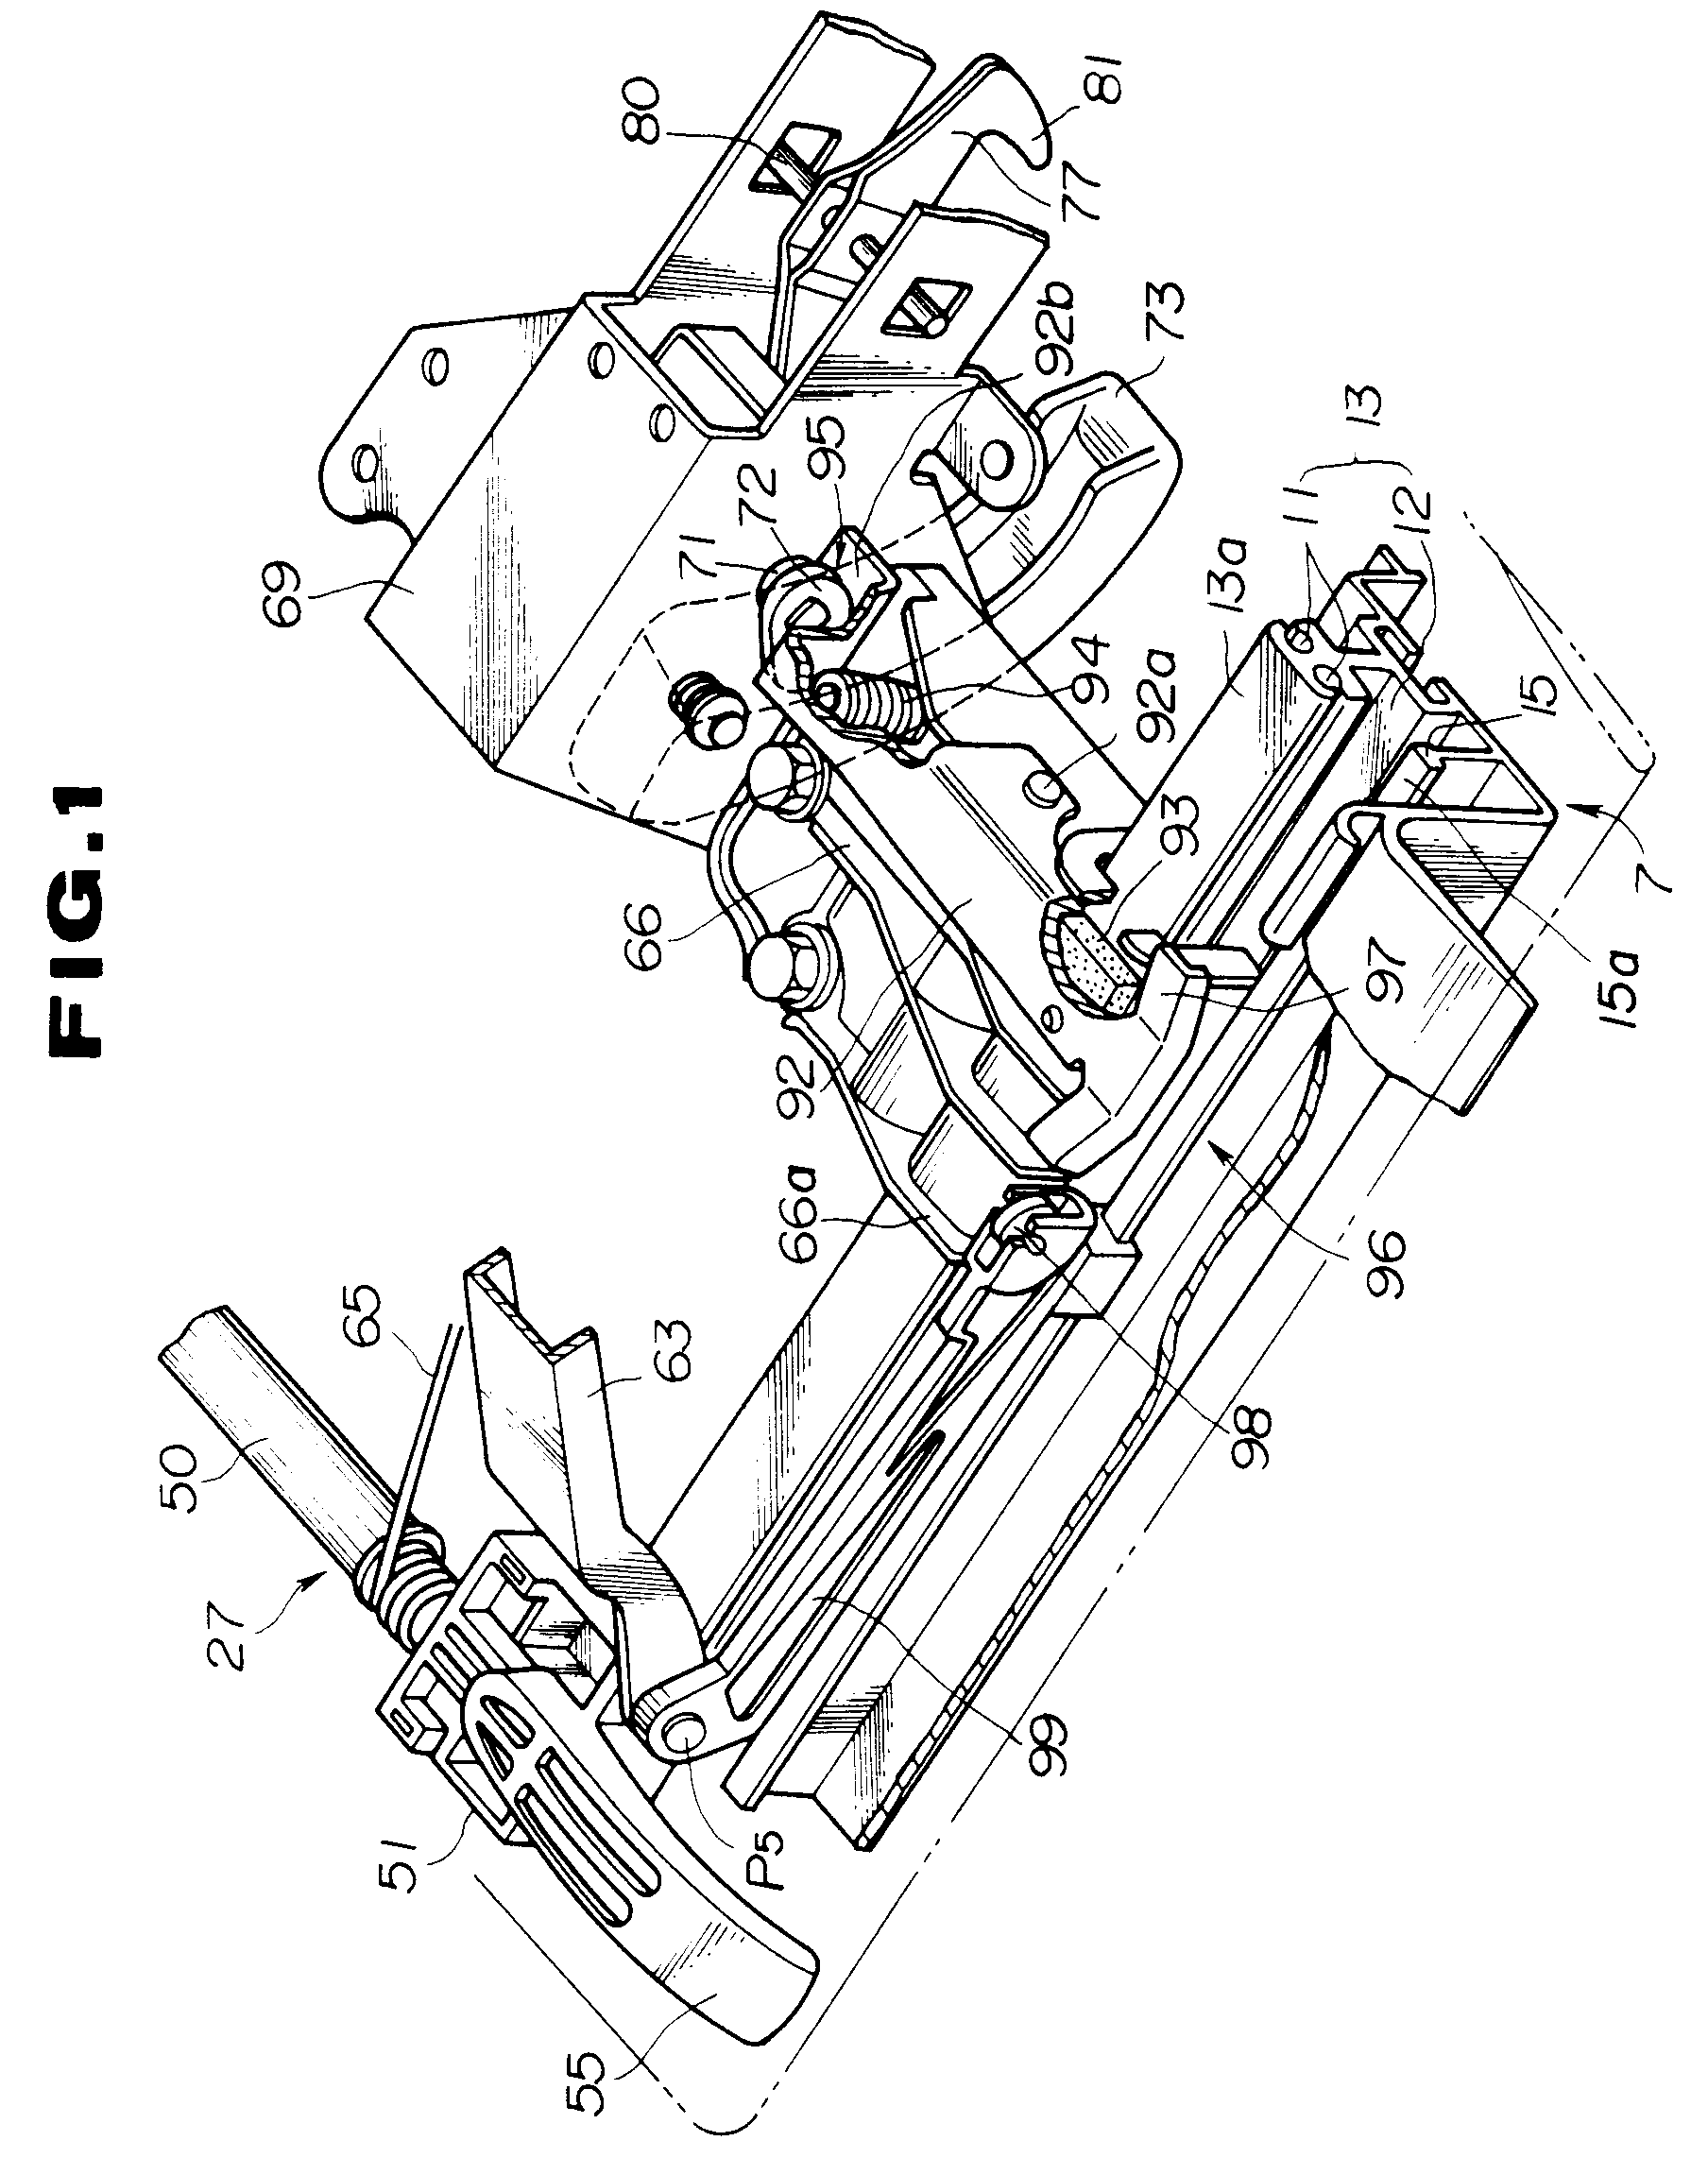 Cooper Countryman Car likewise C230 2007 Engine Diagram as well Types And Structure Of Vehicle furthermore Cooper Countryman Car additionally Lincoln Replacement Parts Catalog. on mini cooper sunroof wiring diagram